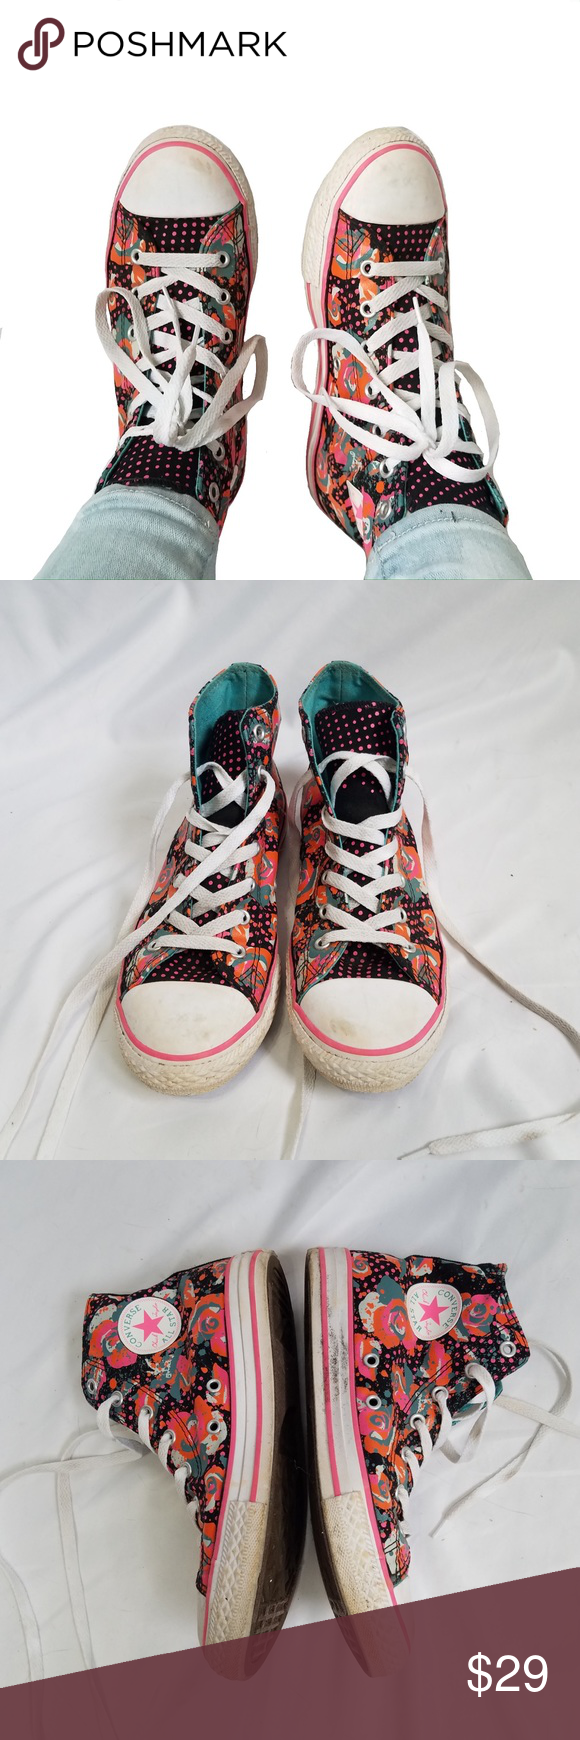 0949200b3f6b Floral high top converse sz U.K. 4 6.5 Floral converse high tops Sz 4.5  which is about 6.5 in women s    Floral pattern Gently used but they look  distressed ...